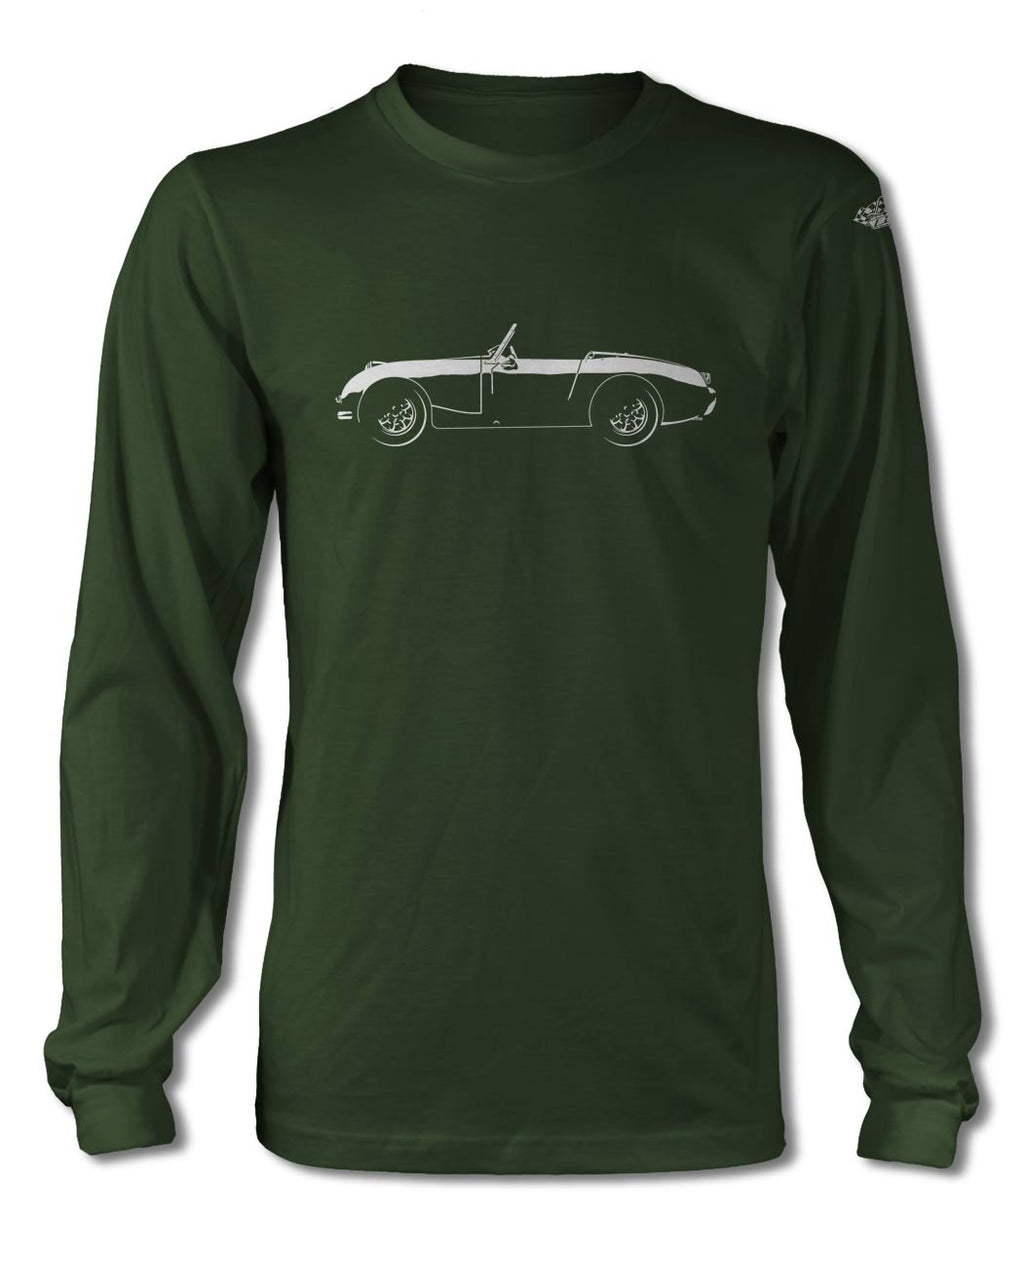 Austin Healey Sprite MKI Roadster T-Shirt - Long Sleeves - Side View